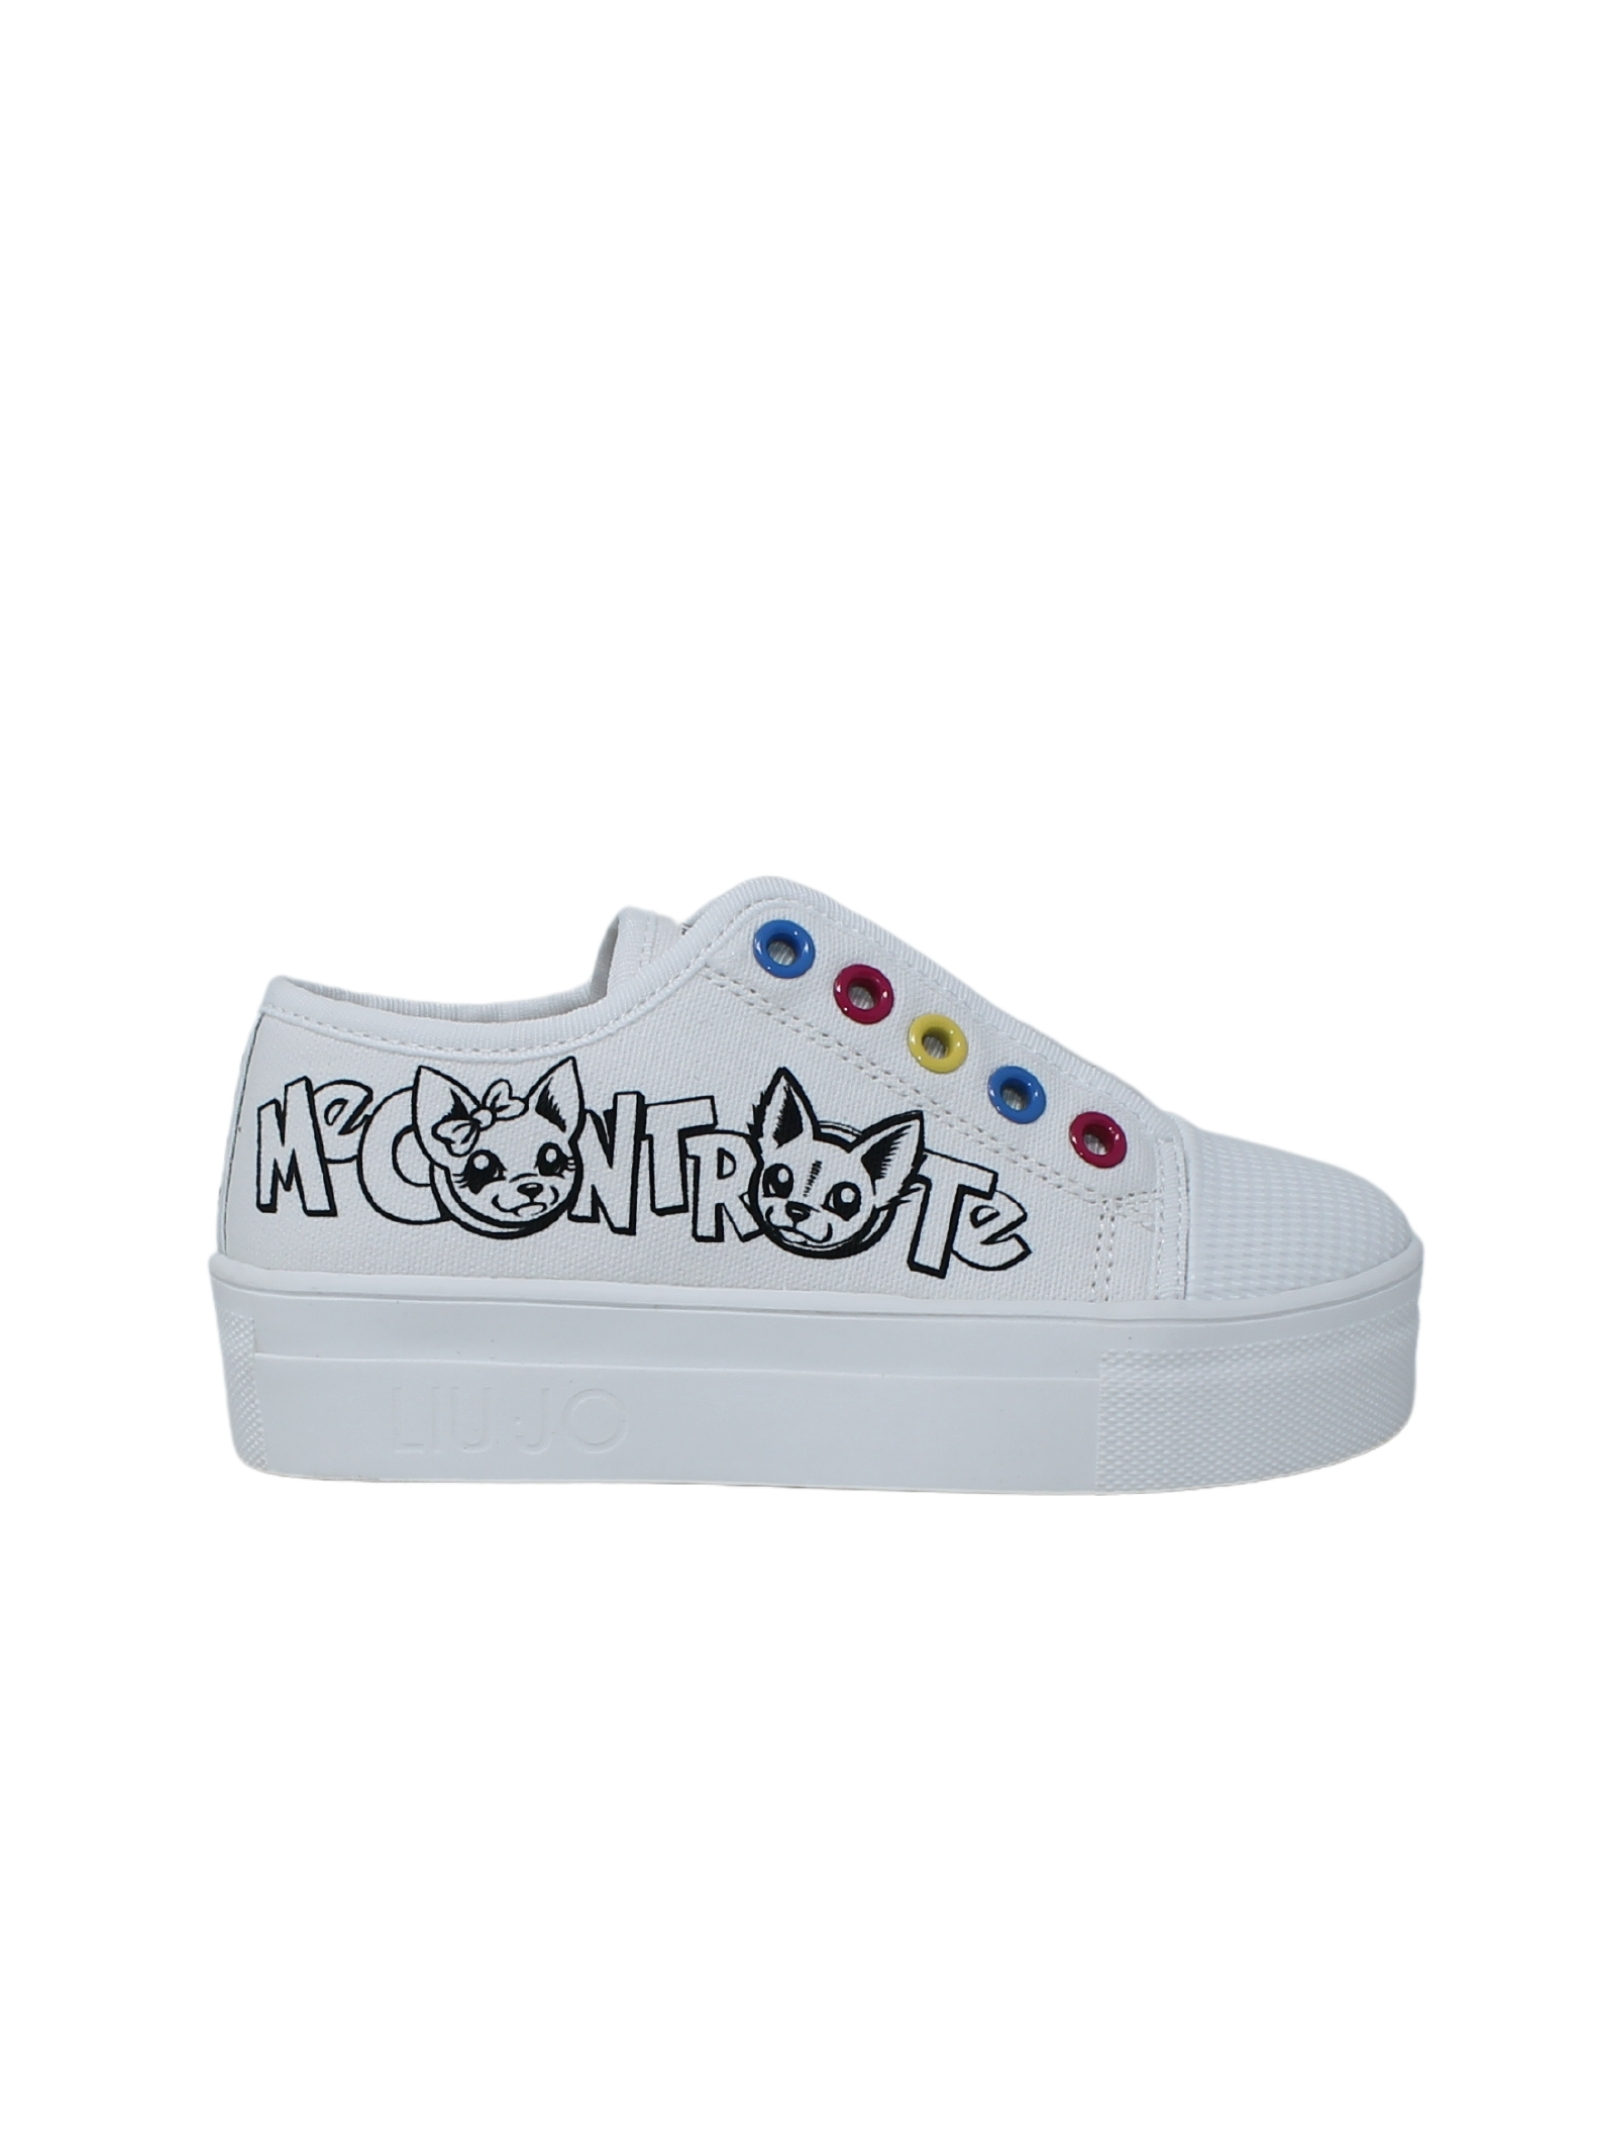 Sneakers Bambina Color LIU-JO MECONTROTE | Sneakers | 4A0805T6948BIANCO